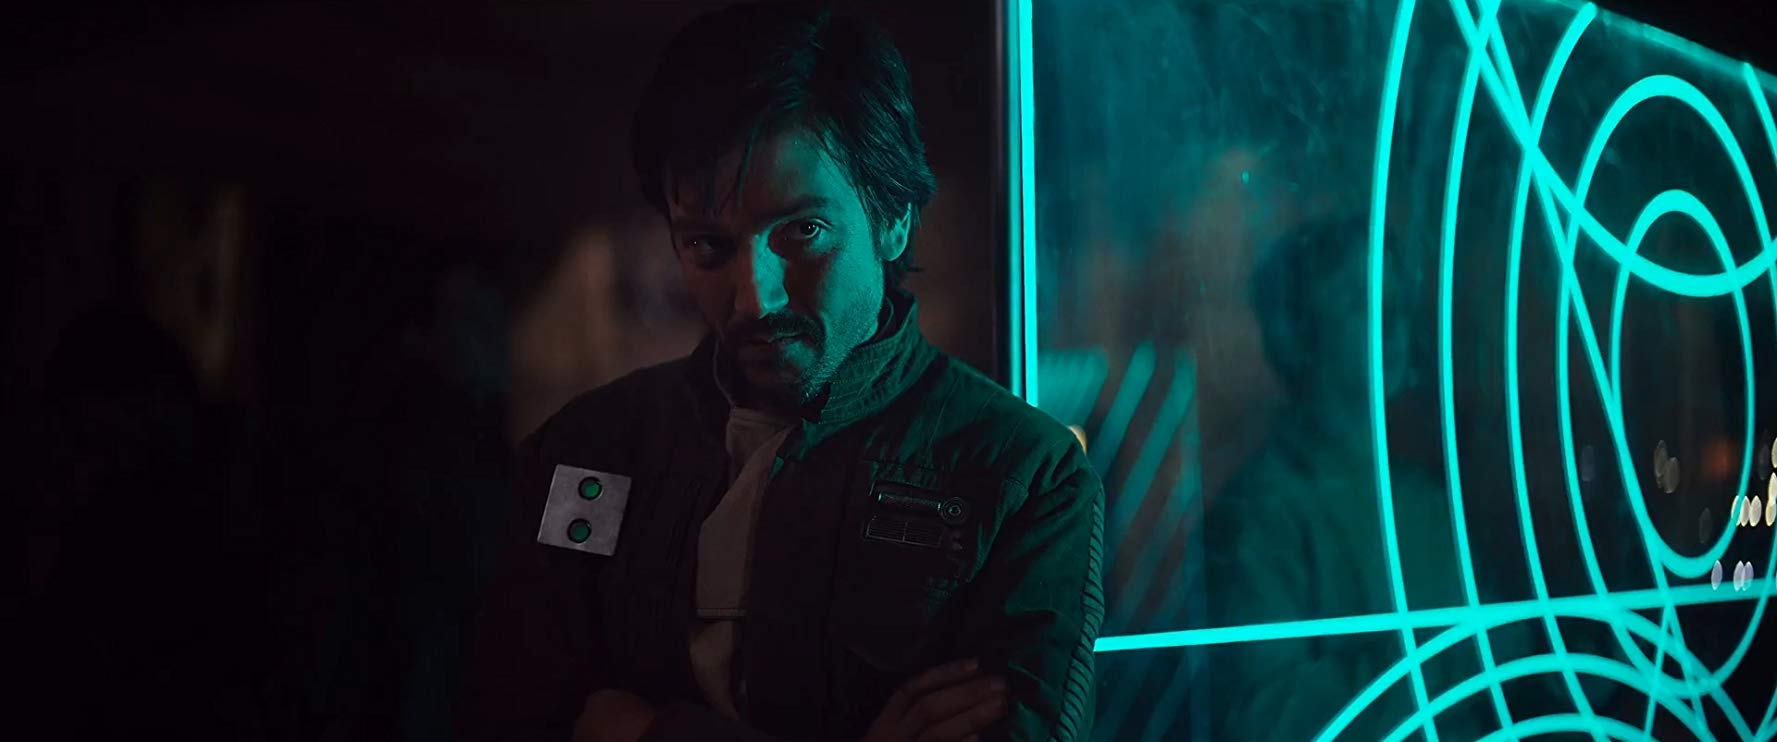 Cassian Andor series reportedly delayed: Is this true?